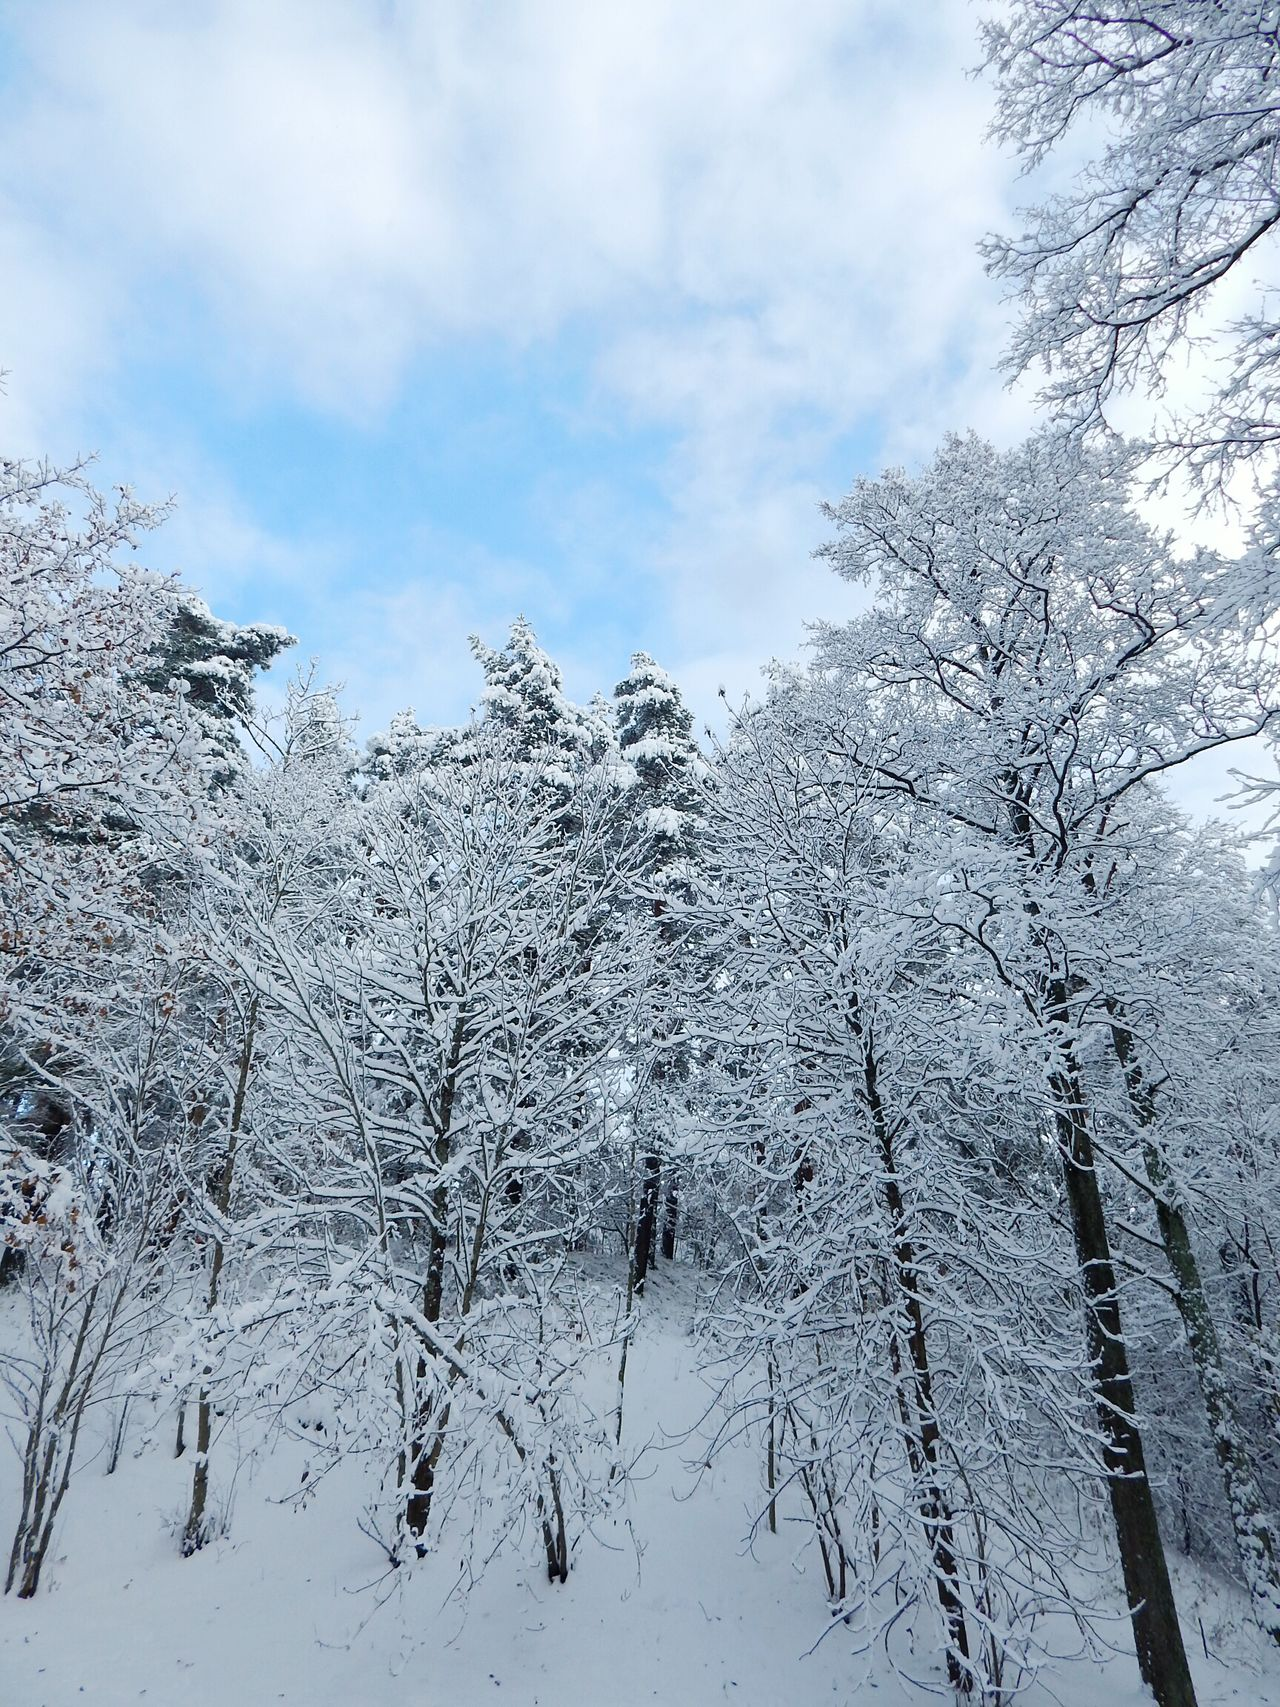 Nature Sky Cloud - Sky Tree No People Beauty In Nature Outdoors Day Close-up Winter Forest Latvia Riga Snow Non-urban Scene Backgrounds Bare Tree Beauty In Nature Nature